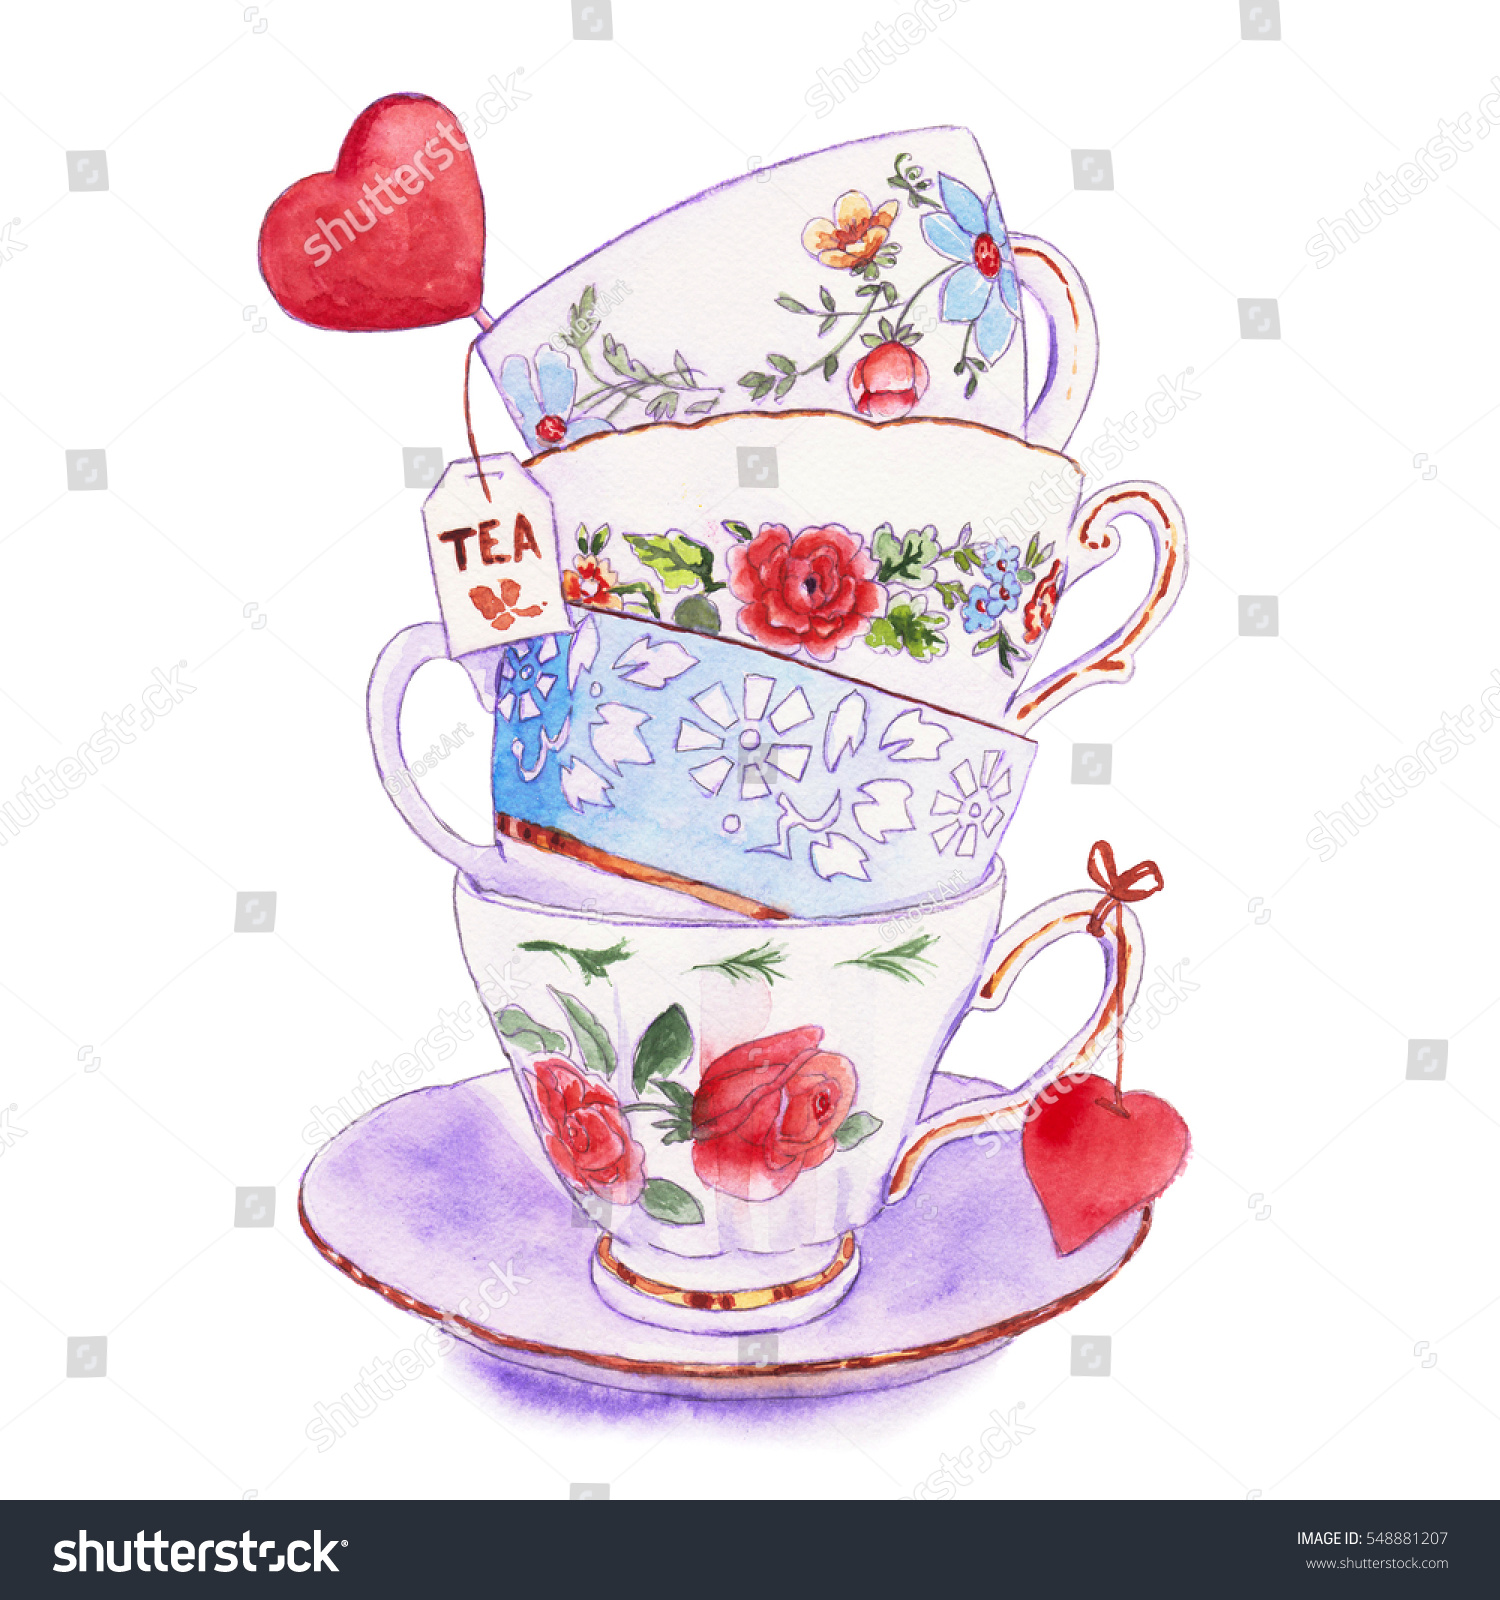 Party Colorful Tea Cups Saucers Closeup Stock Illustration 548881207 - Shutterstock